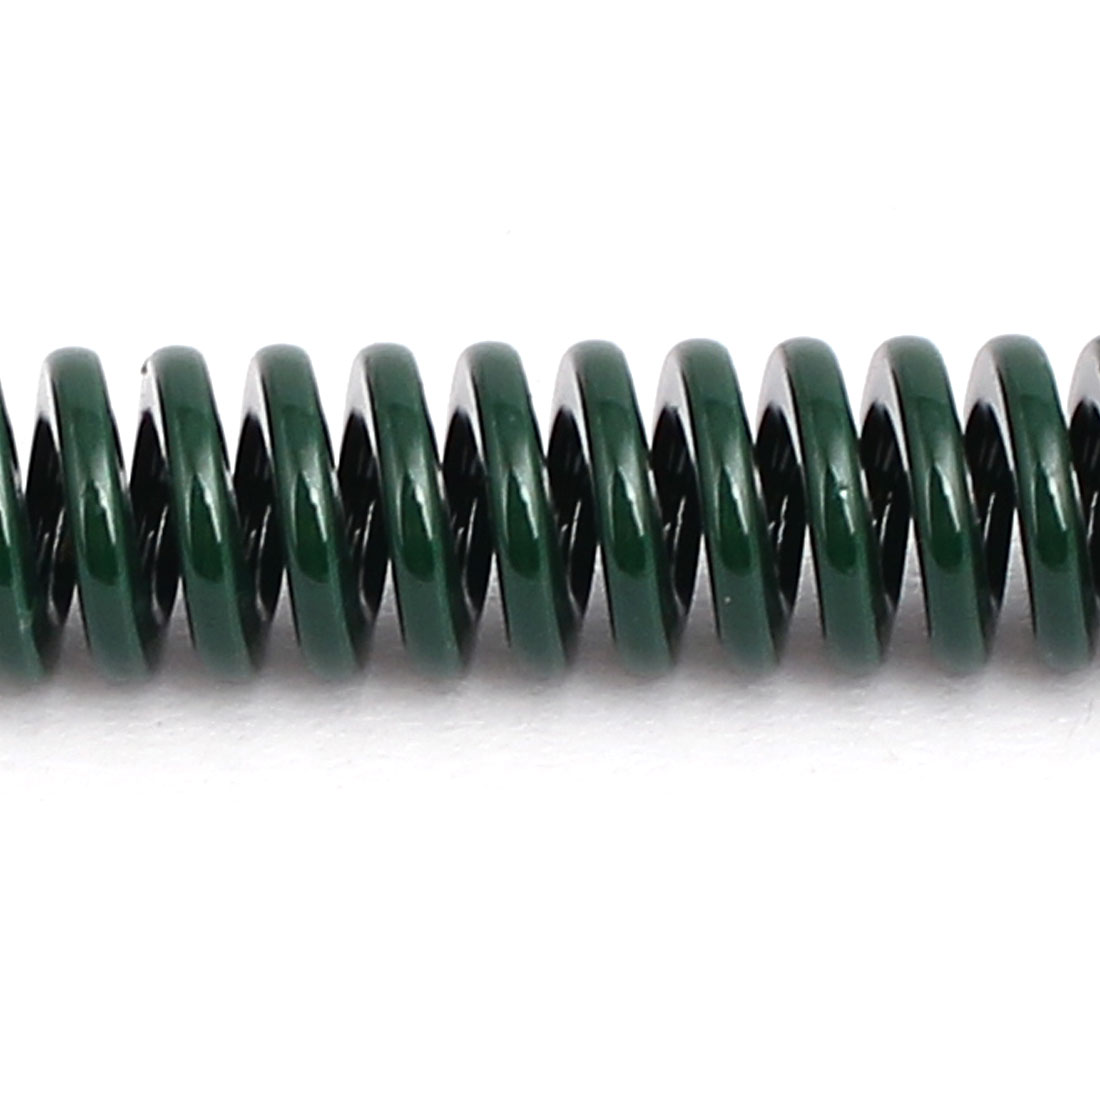 8mm OD 100mm Free Length Heavy Load Compression Mould Die Spring Green 10pcs - image 2 of 3